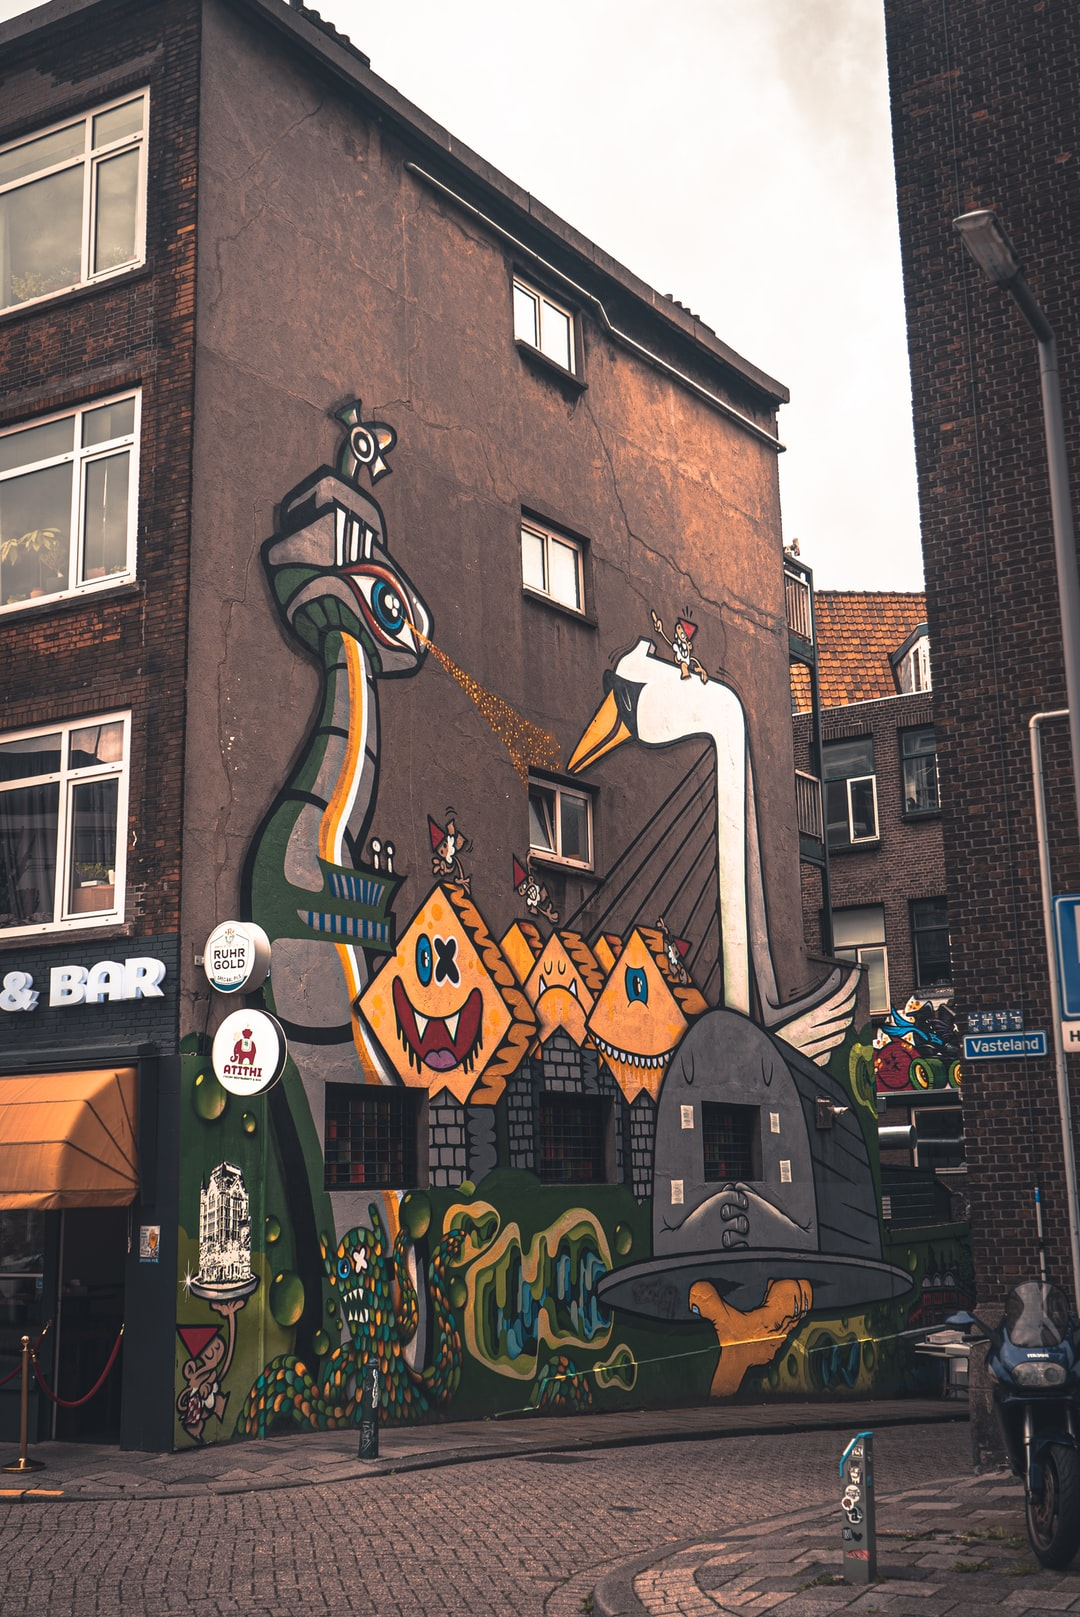 A grafitti wall in the town centre of Rotterdam! You can see the dwarves in many places scattered through the city.